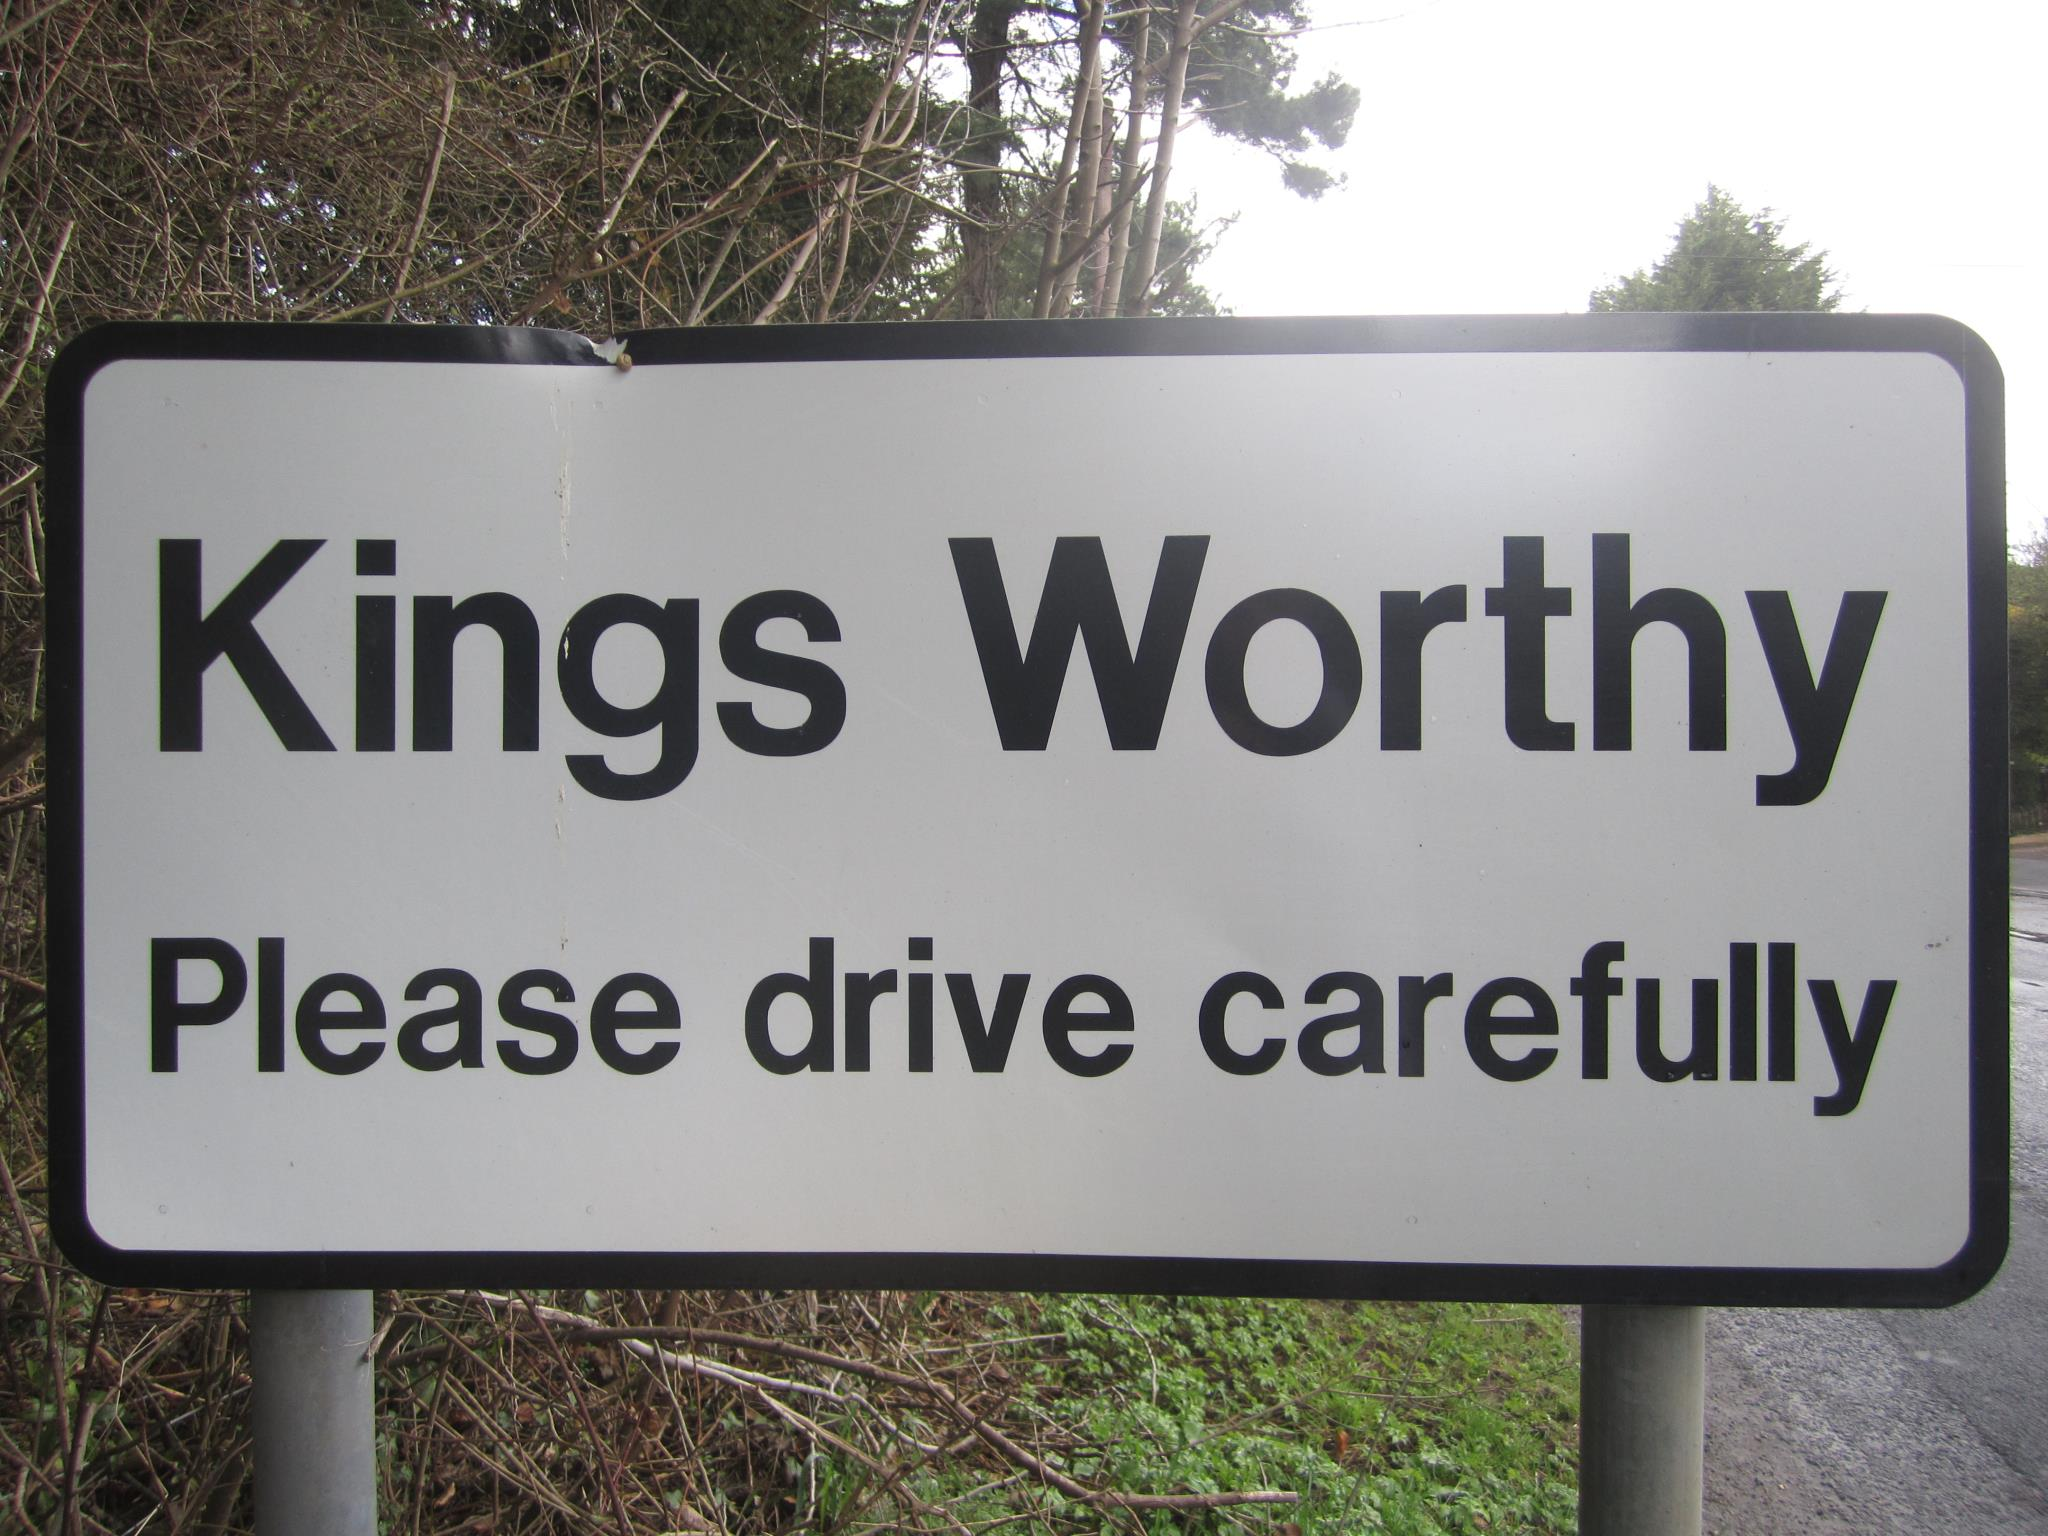 Local News | Vehicles Damaged in Kingsworthy